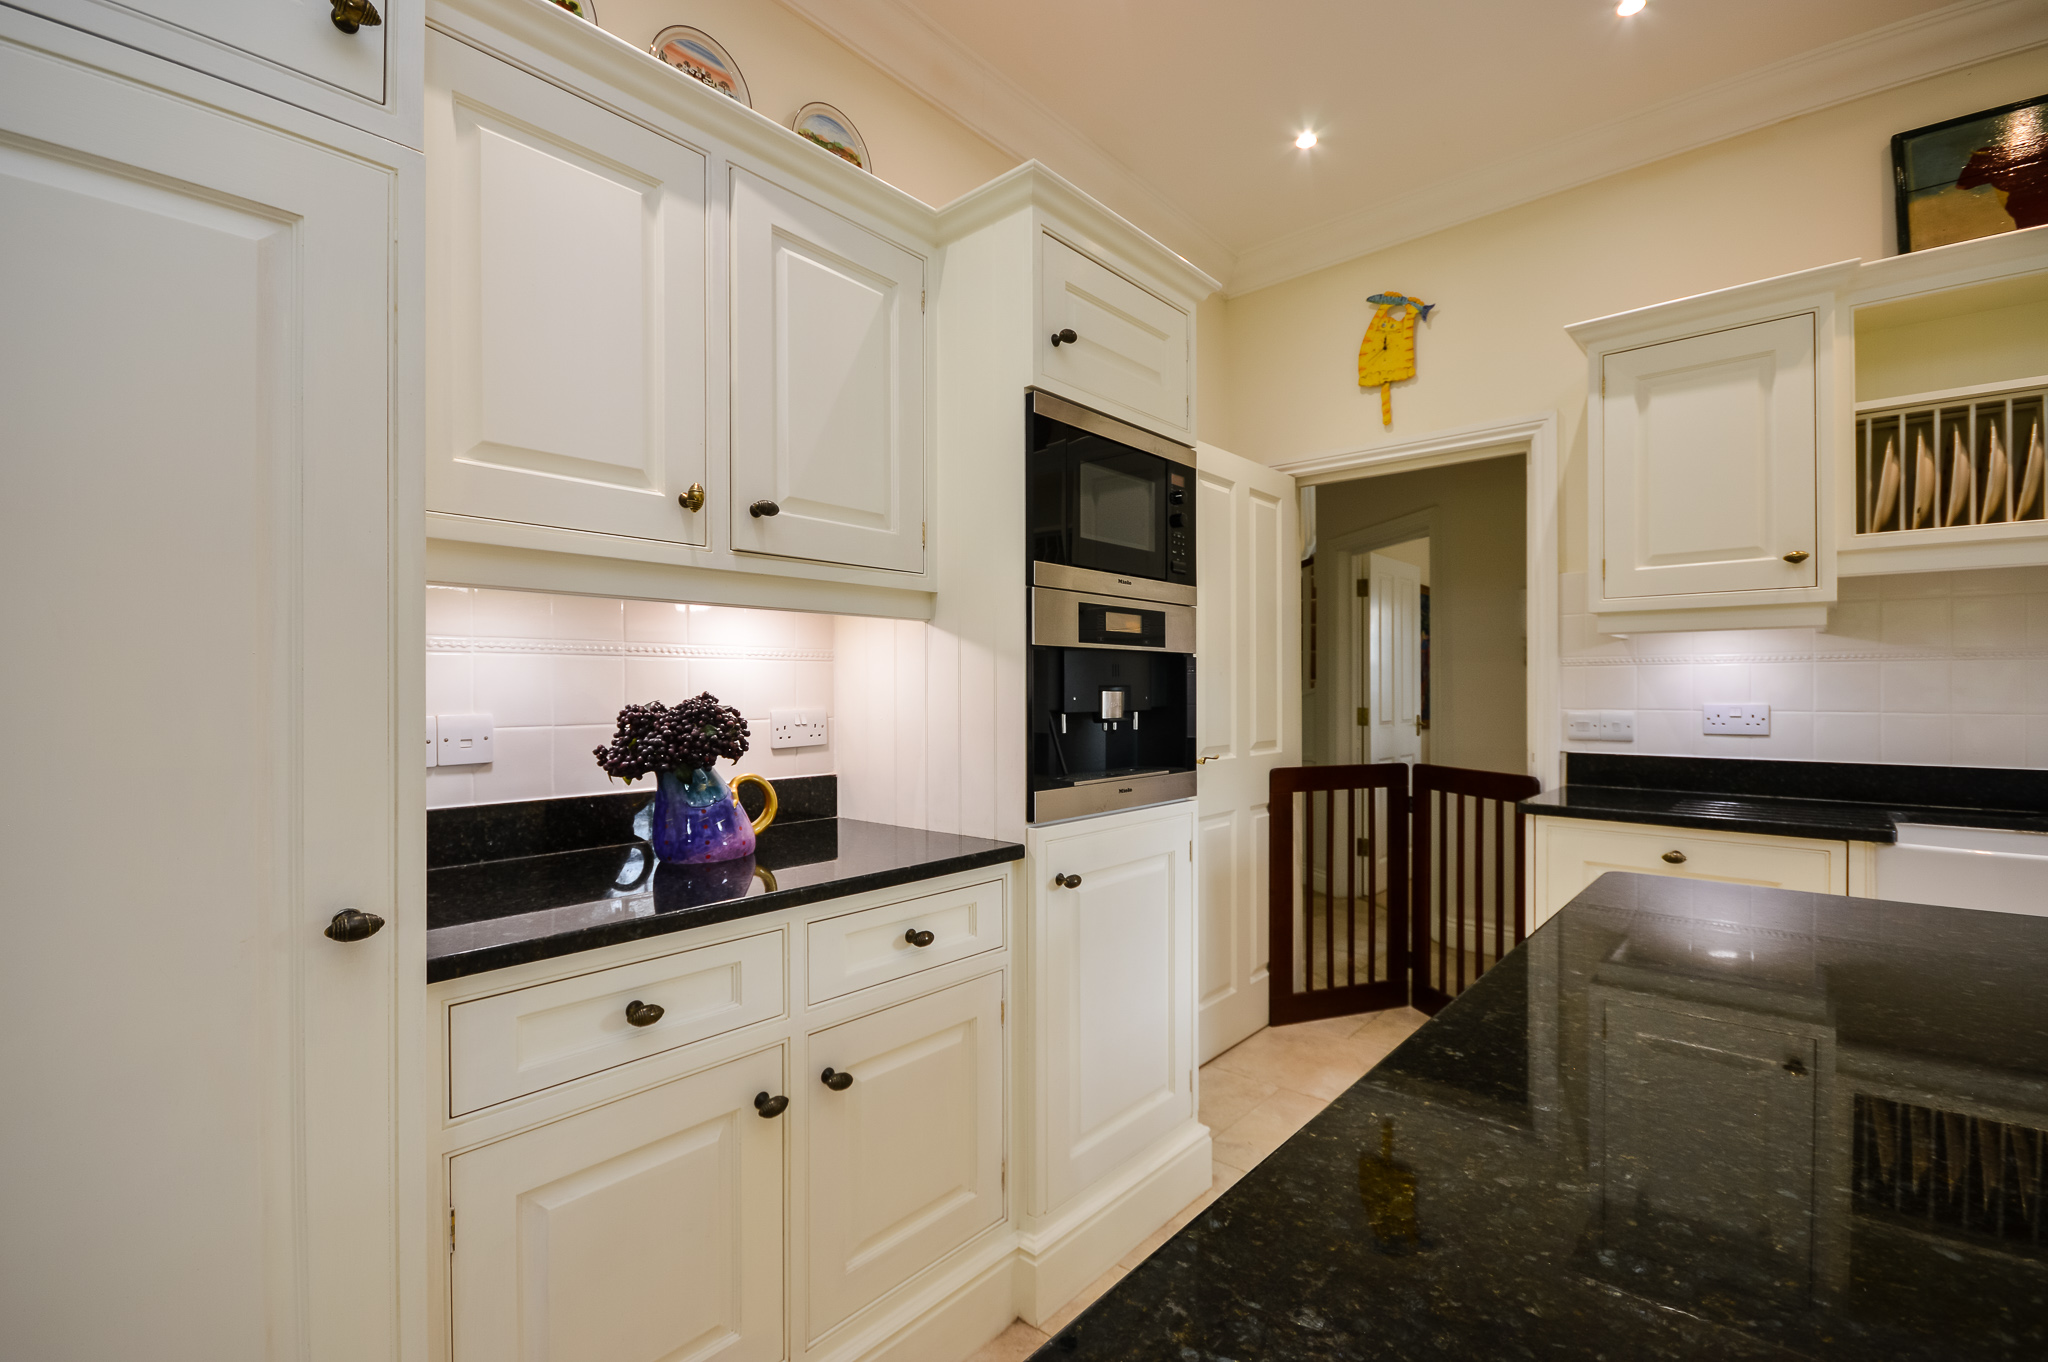 used kitchen islands large painted used kitchen with island falcon range oven gloucestershire used kitchen exchange 4887